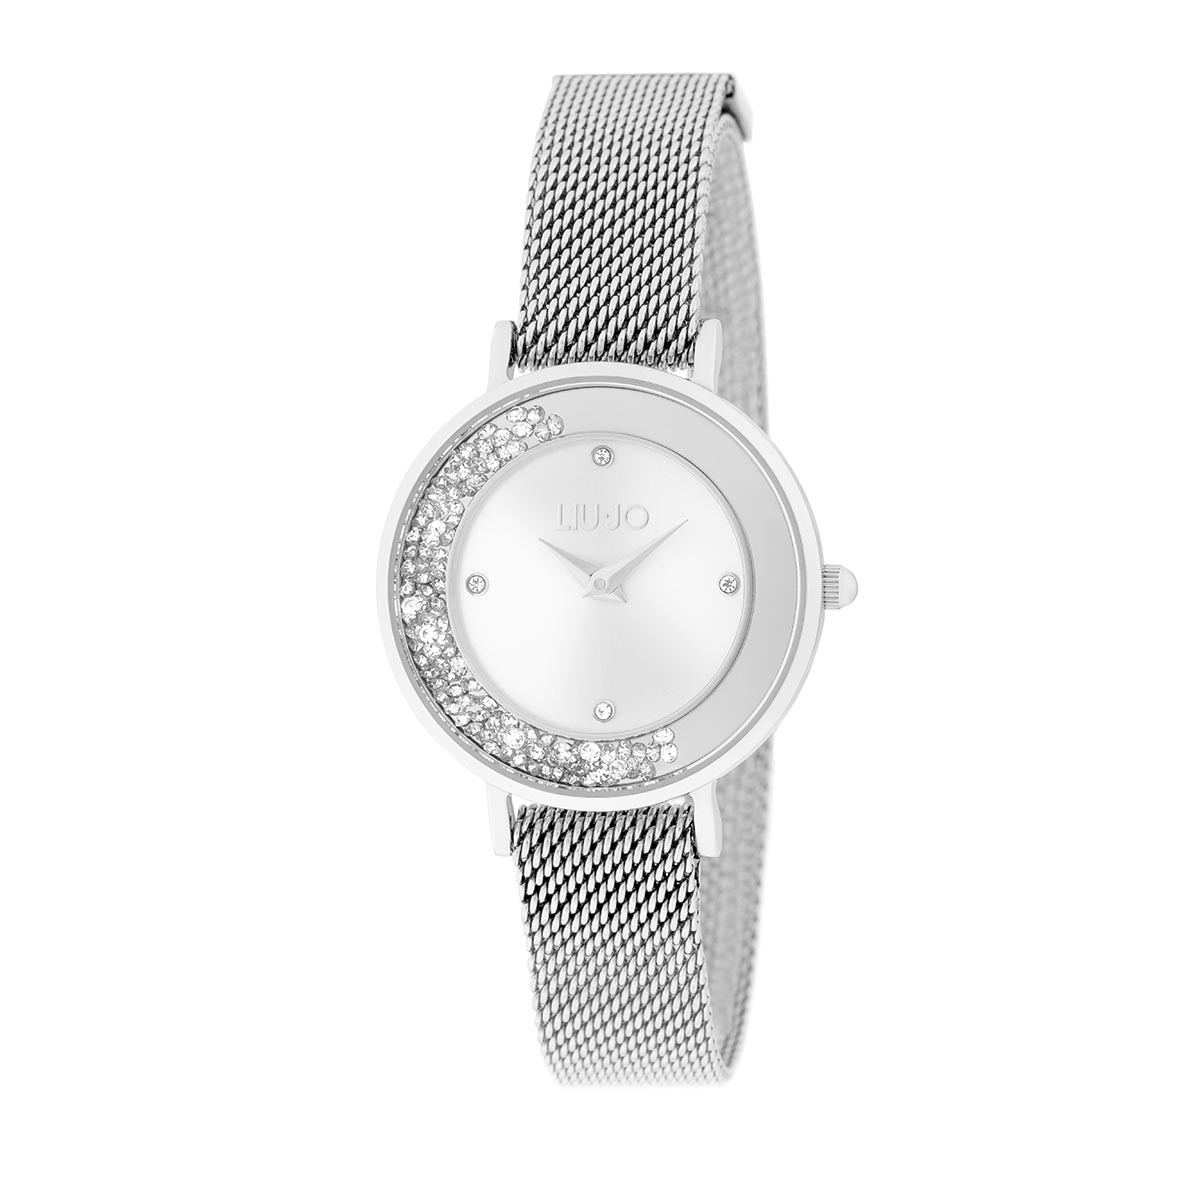 LIU JO Mini Dancing Slim Silver 29mm